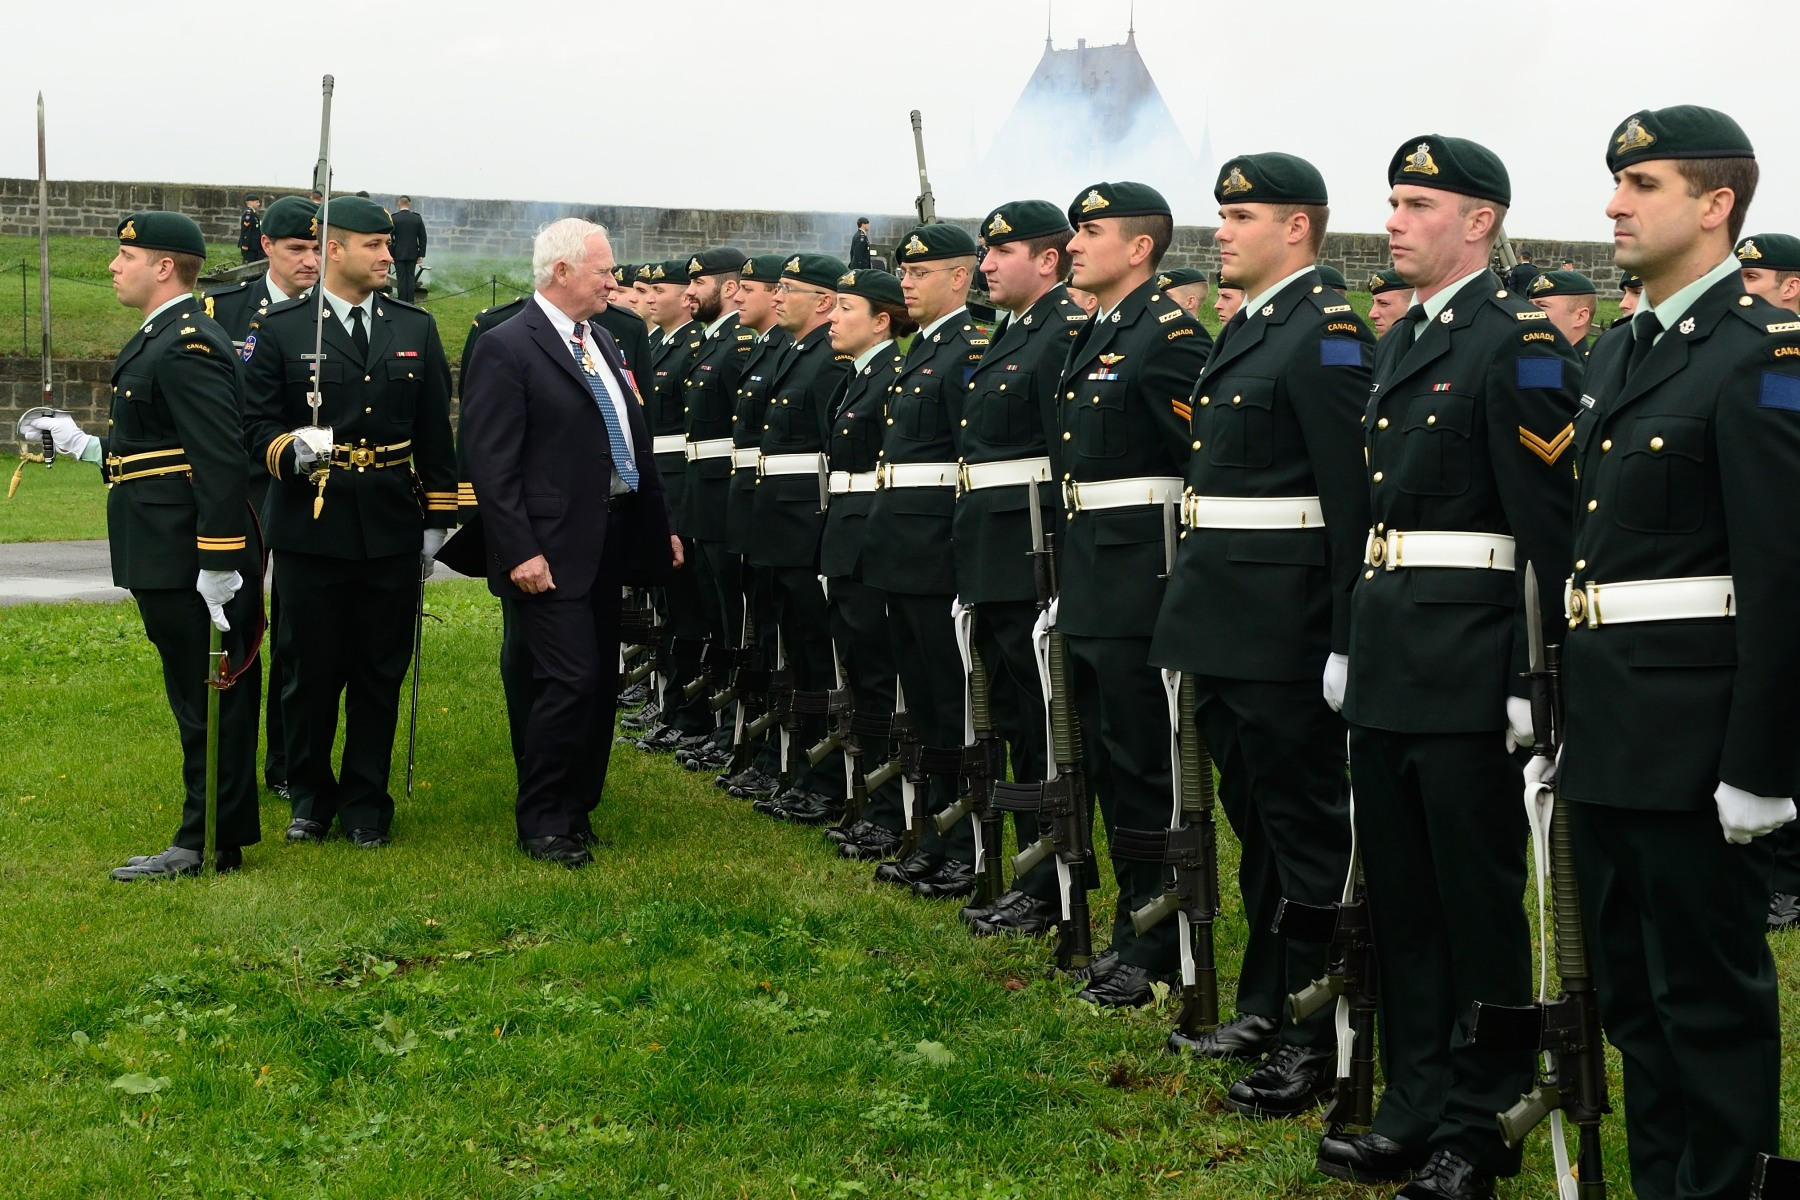 The Governor General took part in the unveiling of a statue in memory of General the Right Honourable Georges P. Vanier during a ceremony at the Citadelle of Québec.